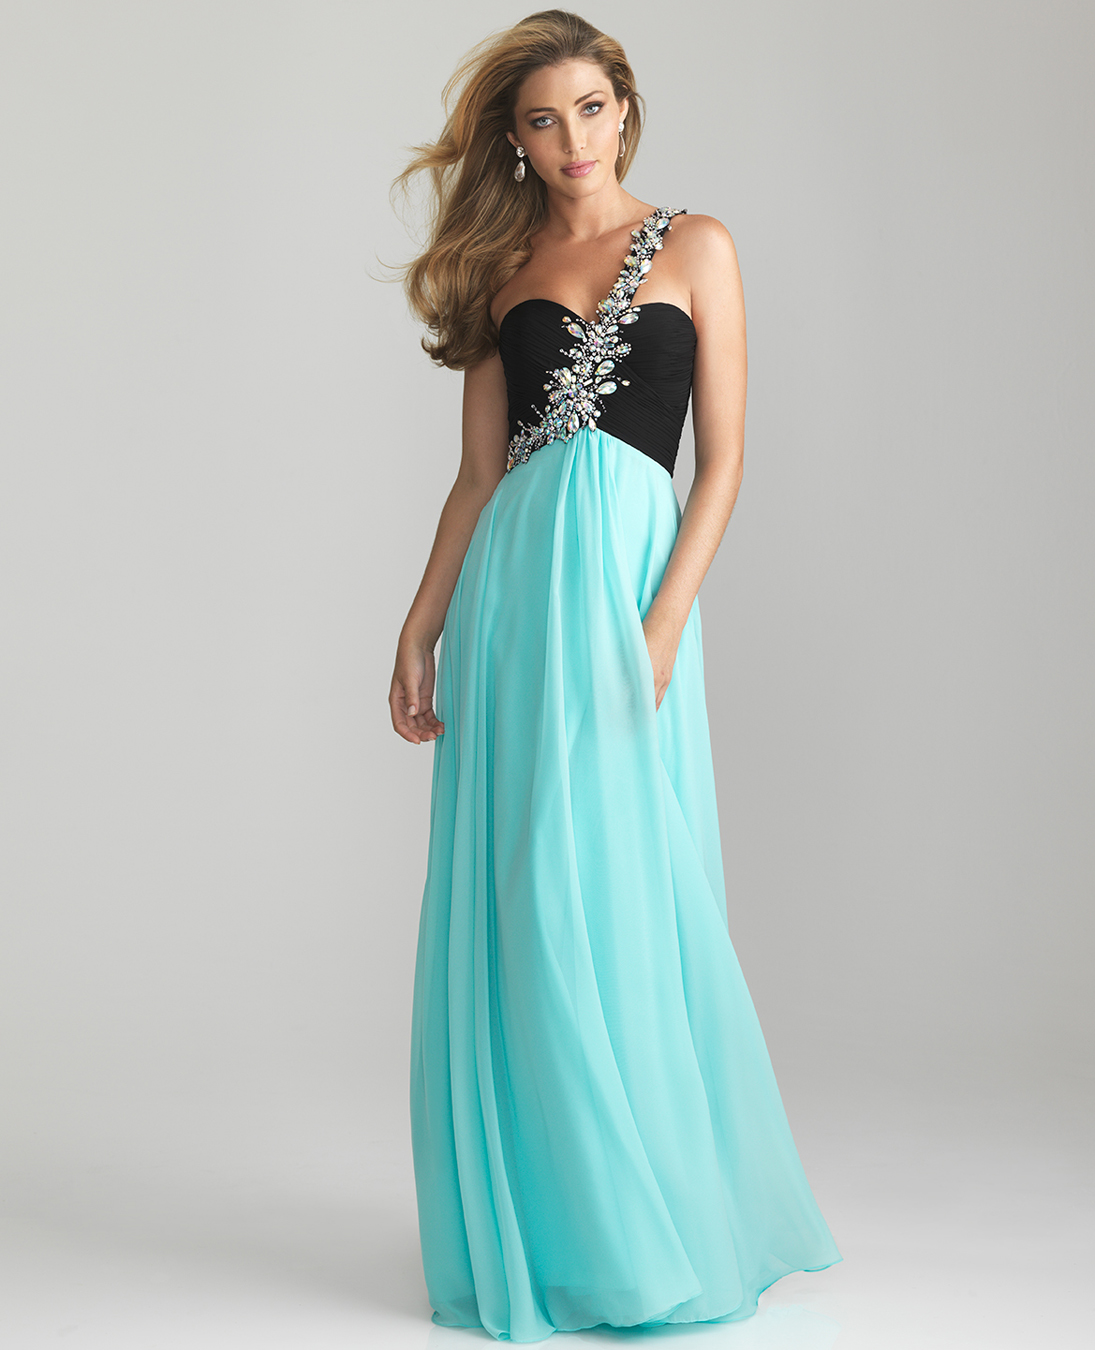 STEAL THE SCENE FROM THE PROM QUEEN IN THESE GORGEOUS GOWNS ...